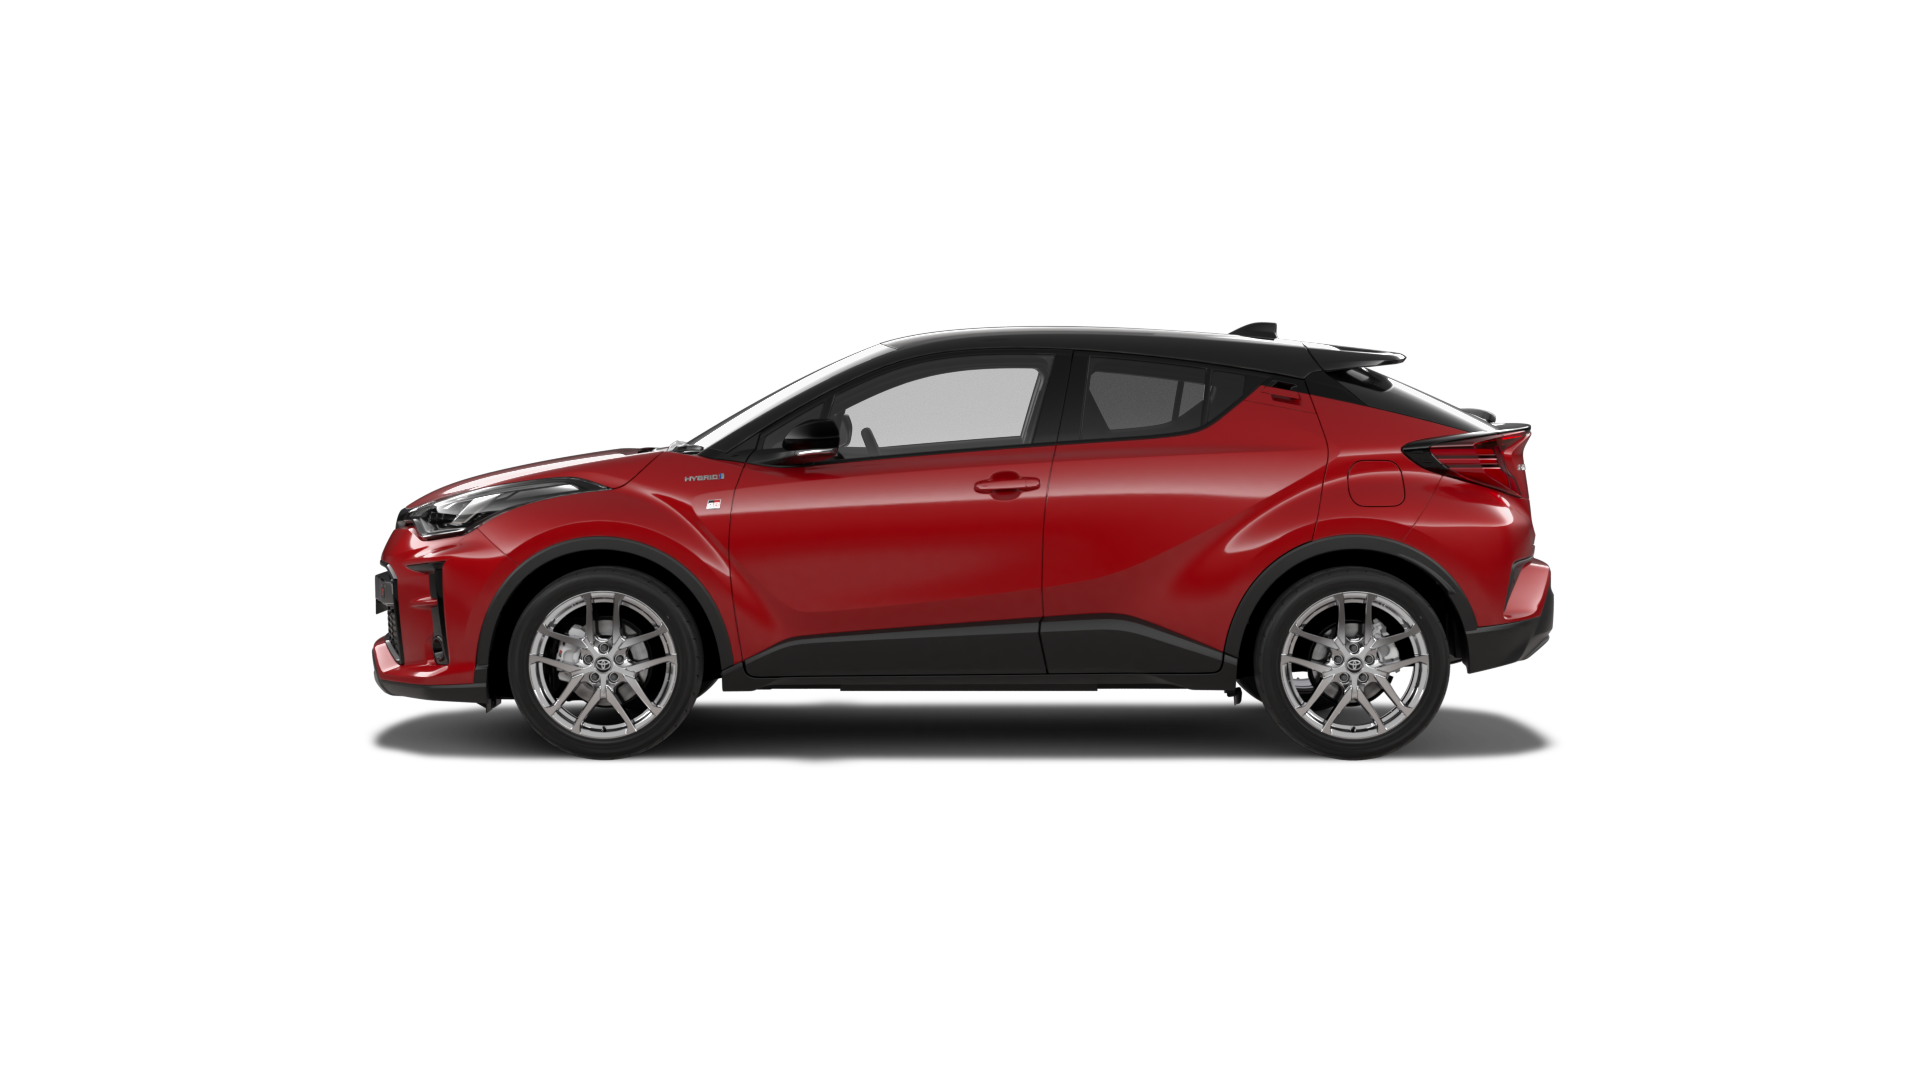 Limited edition C-HR GR Sport has landed. Ask us today at Sunshine Toyota on the Sunshine Coast! Your local Toyota dealer!